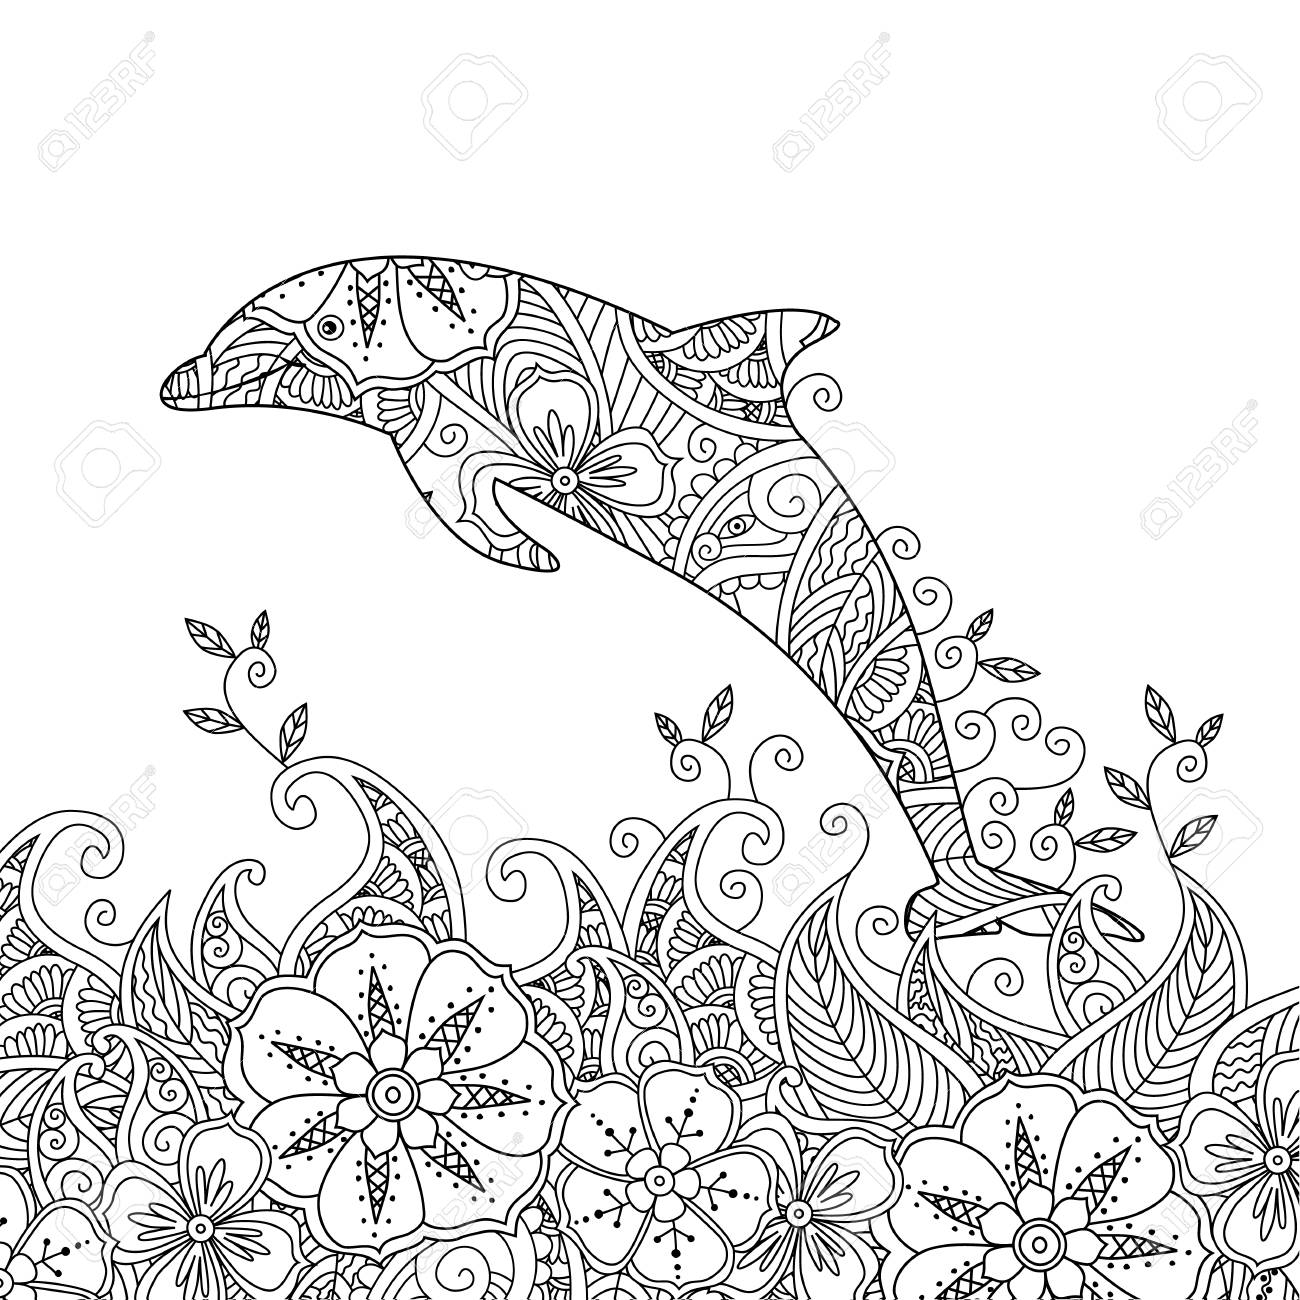 Coloring Page With One Jumping Dolphin In The Sea. Square ...